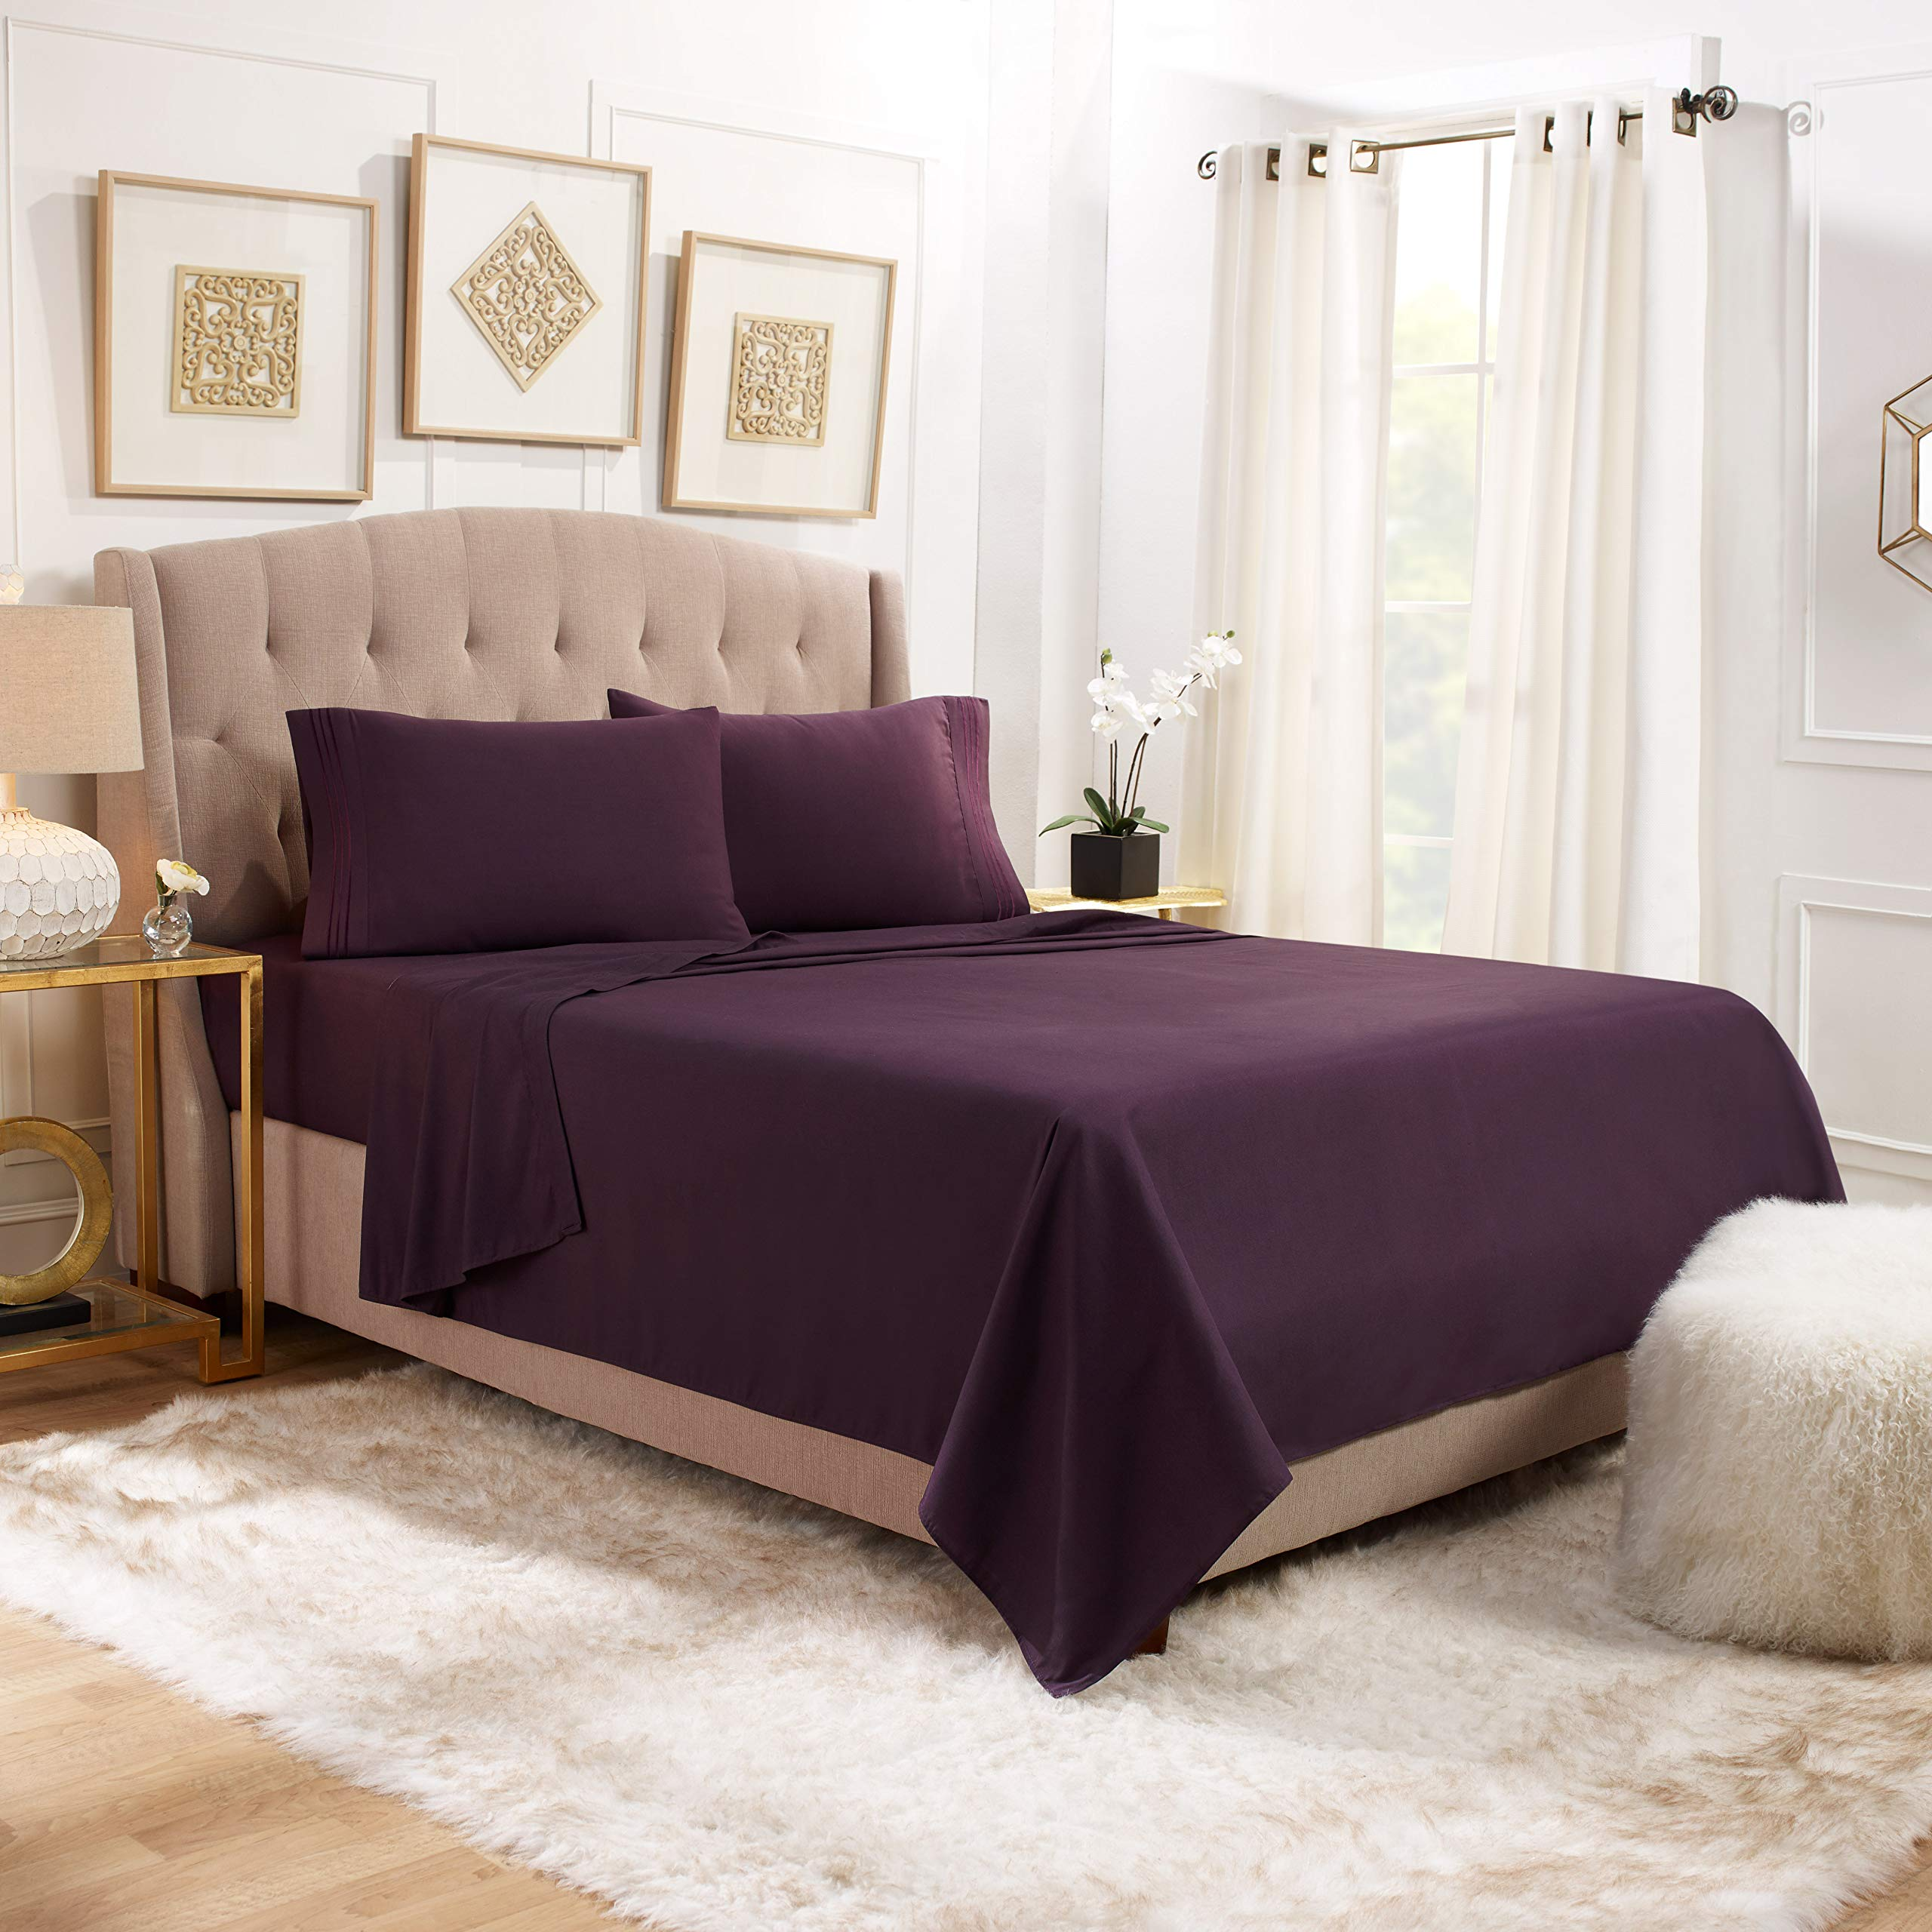 """Empyrean Bedding 14"""" - 16"""" Deep Pocket Fitted Sheet 3 Piece Set - Hotel Luxury Soft Double Brushed Microfiber Top Sheet - Wrinkle Free Fitted Bed Sheet, Flat Sheet and 1 Pillow Case - Twin, Purple"""